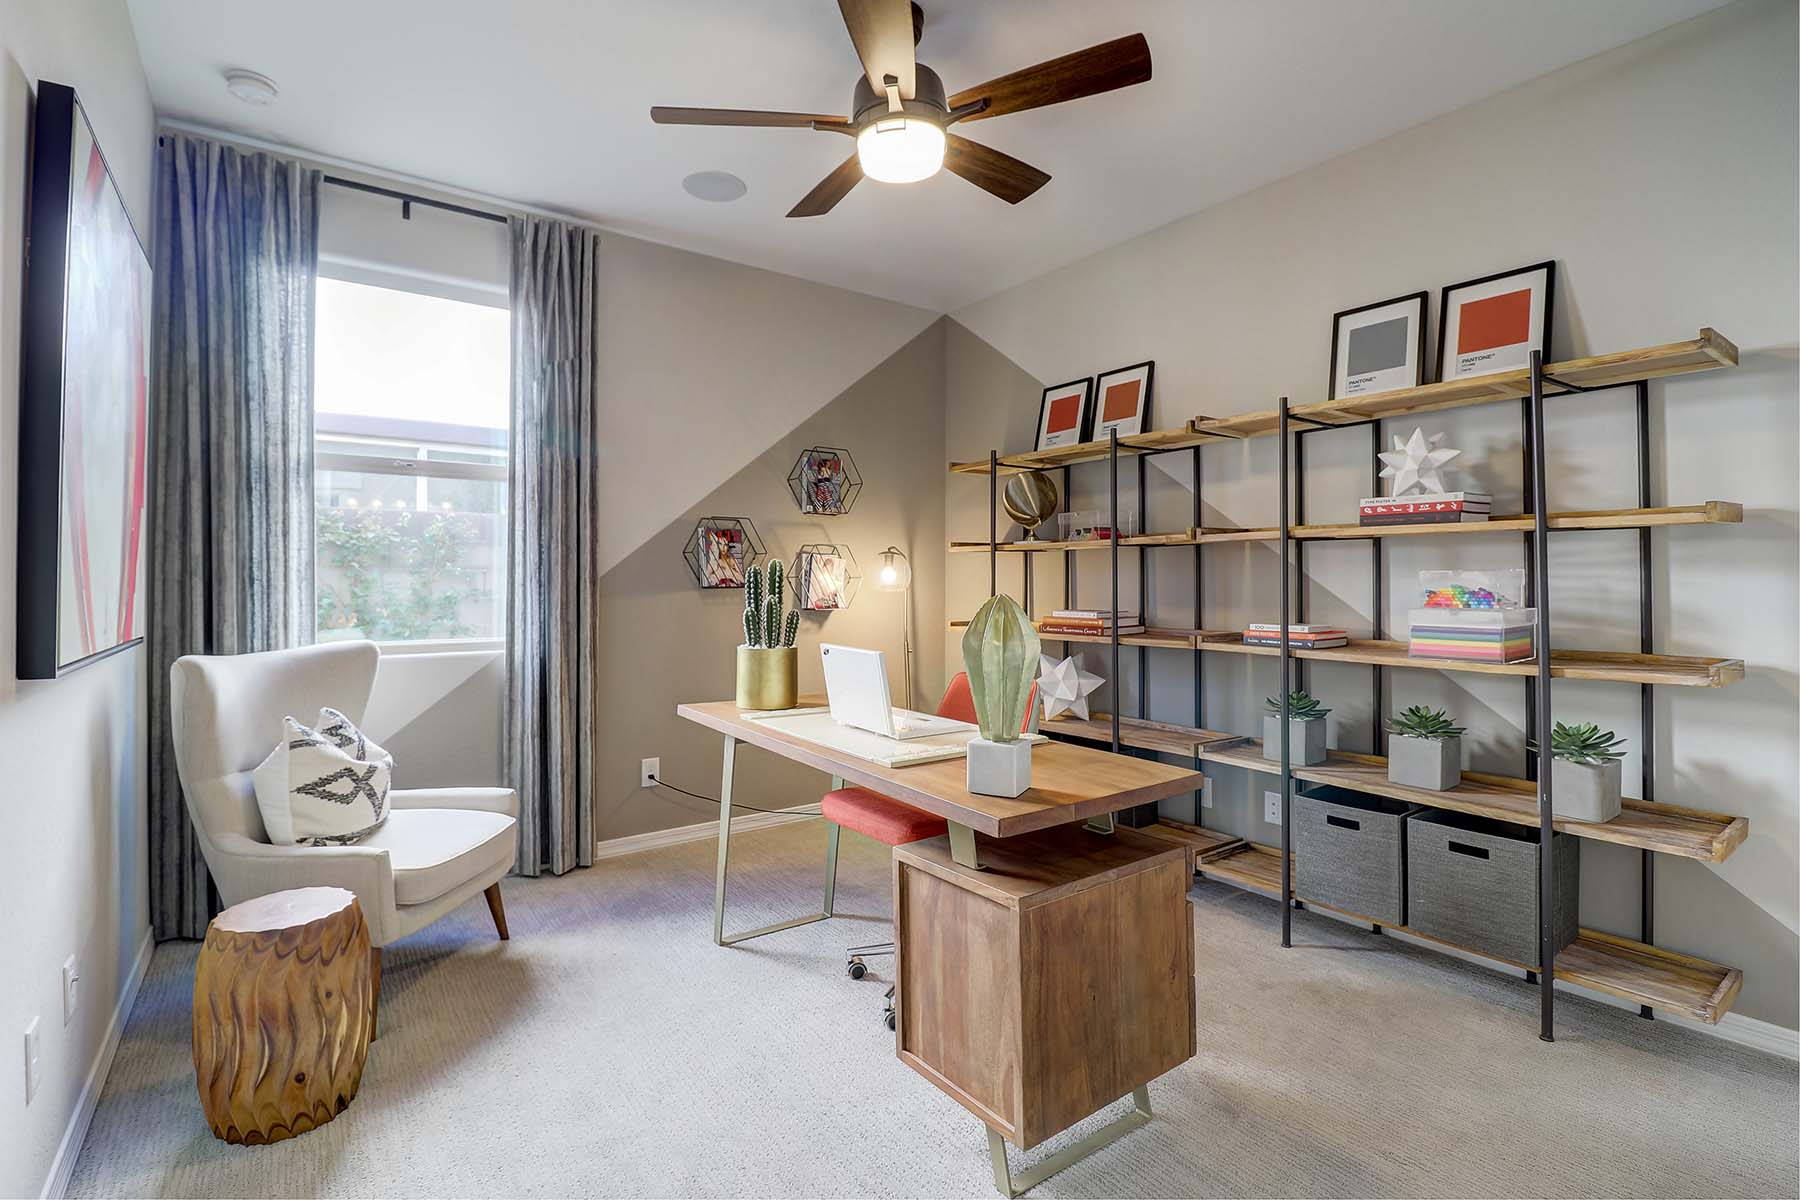 Elwood Plan Study Room at Crestwood at Canyon Trails in Goodyear Arizona by Mattamy Homes